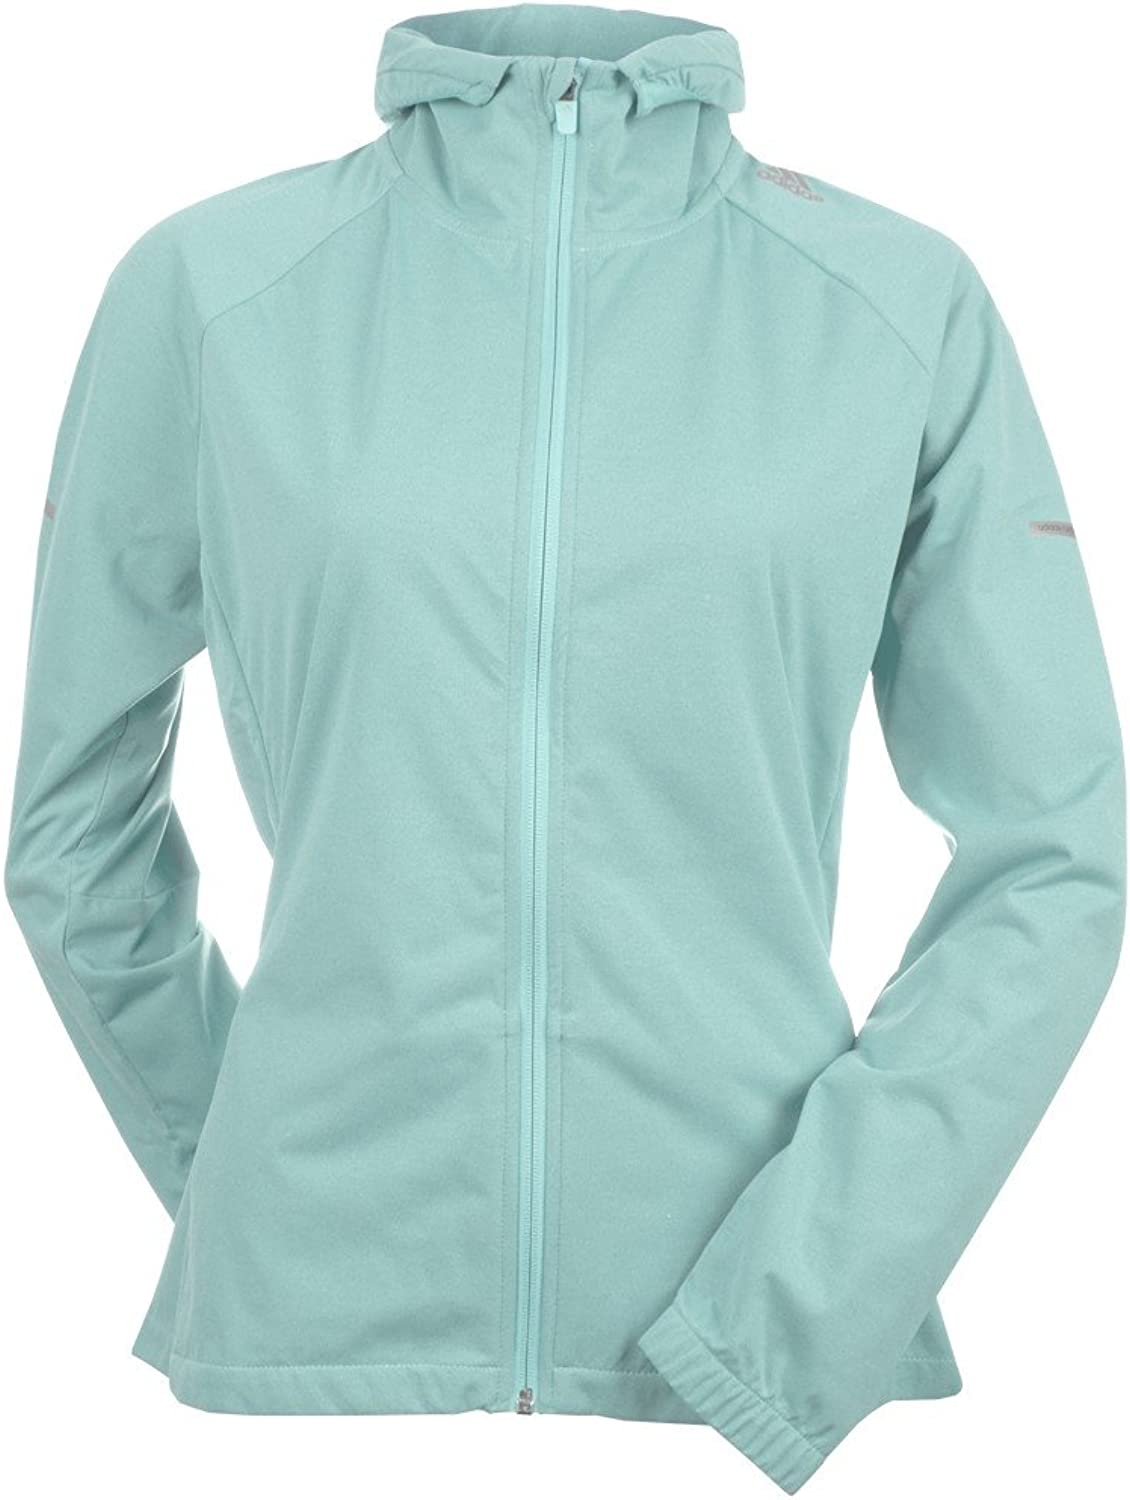 Adidas Womens Sequencials Climaproof Slim Jacket